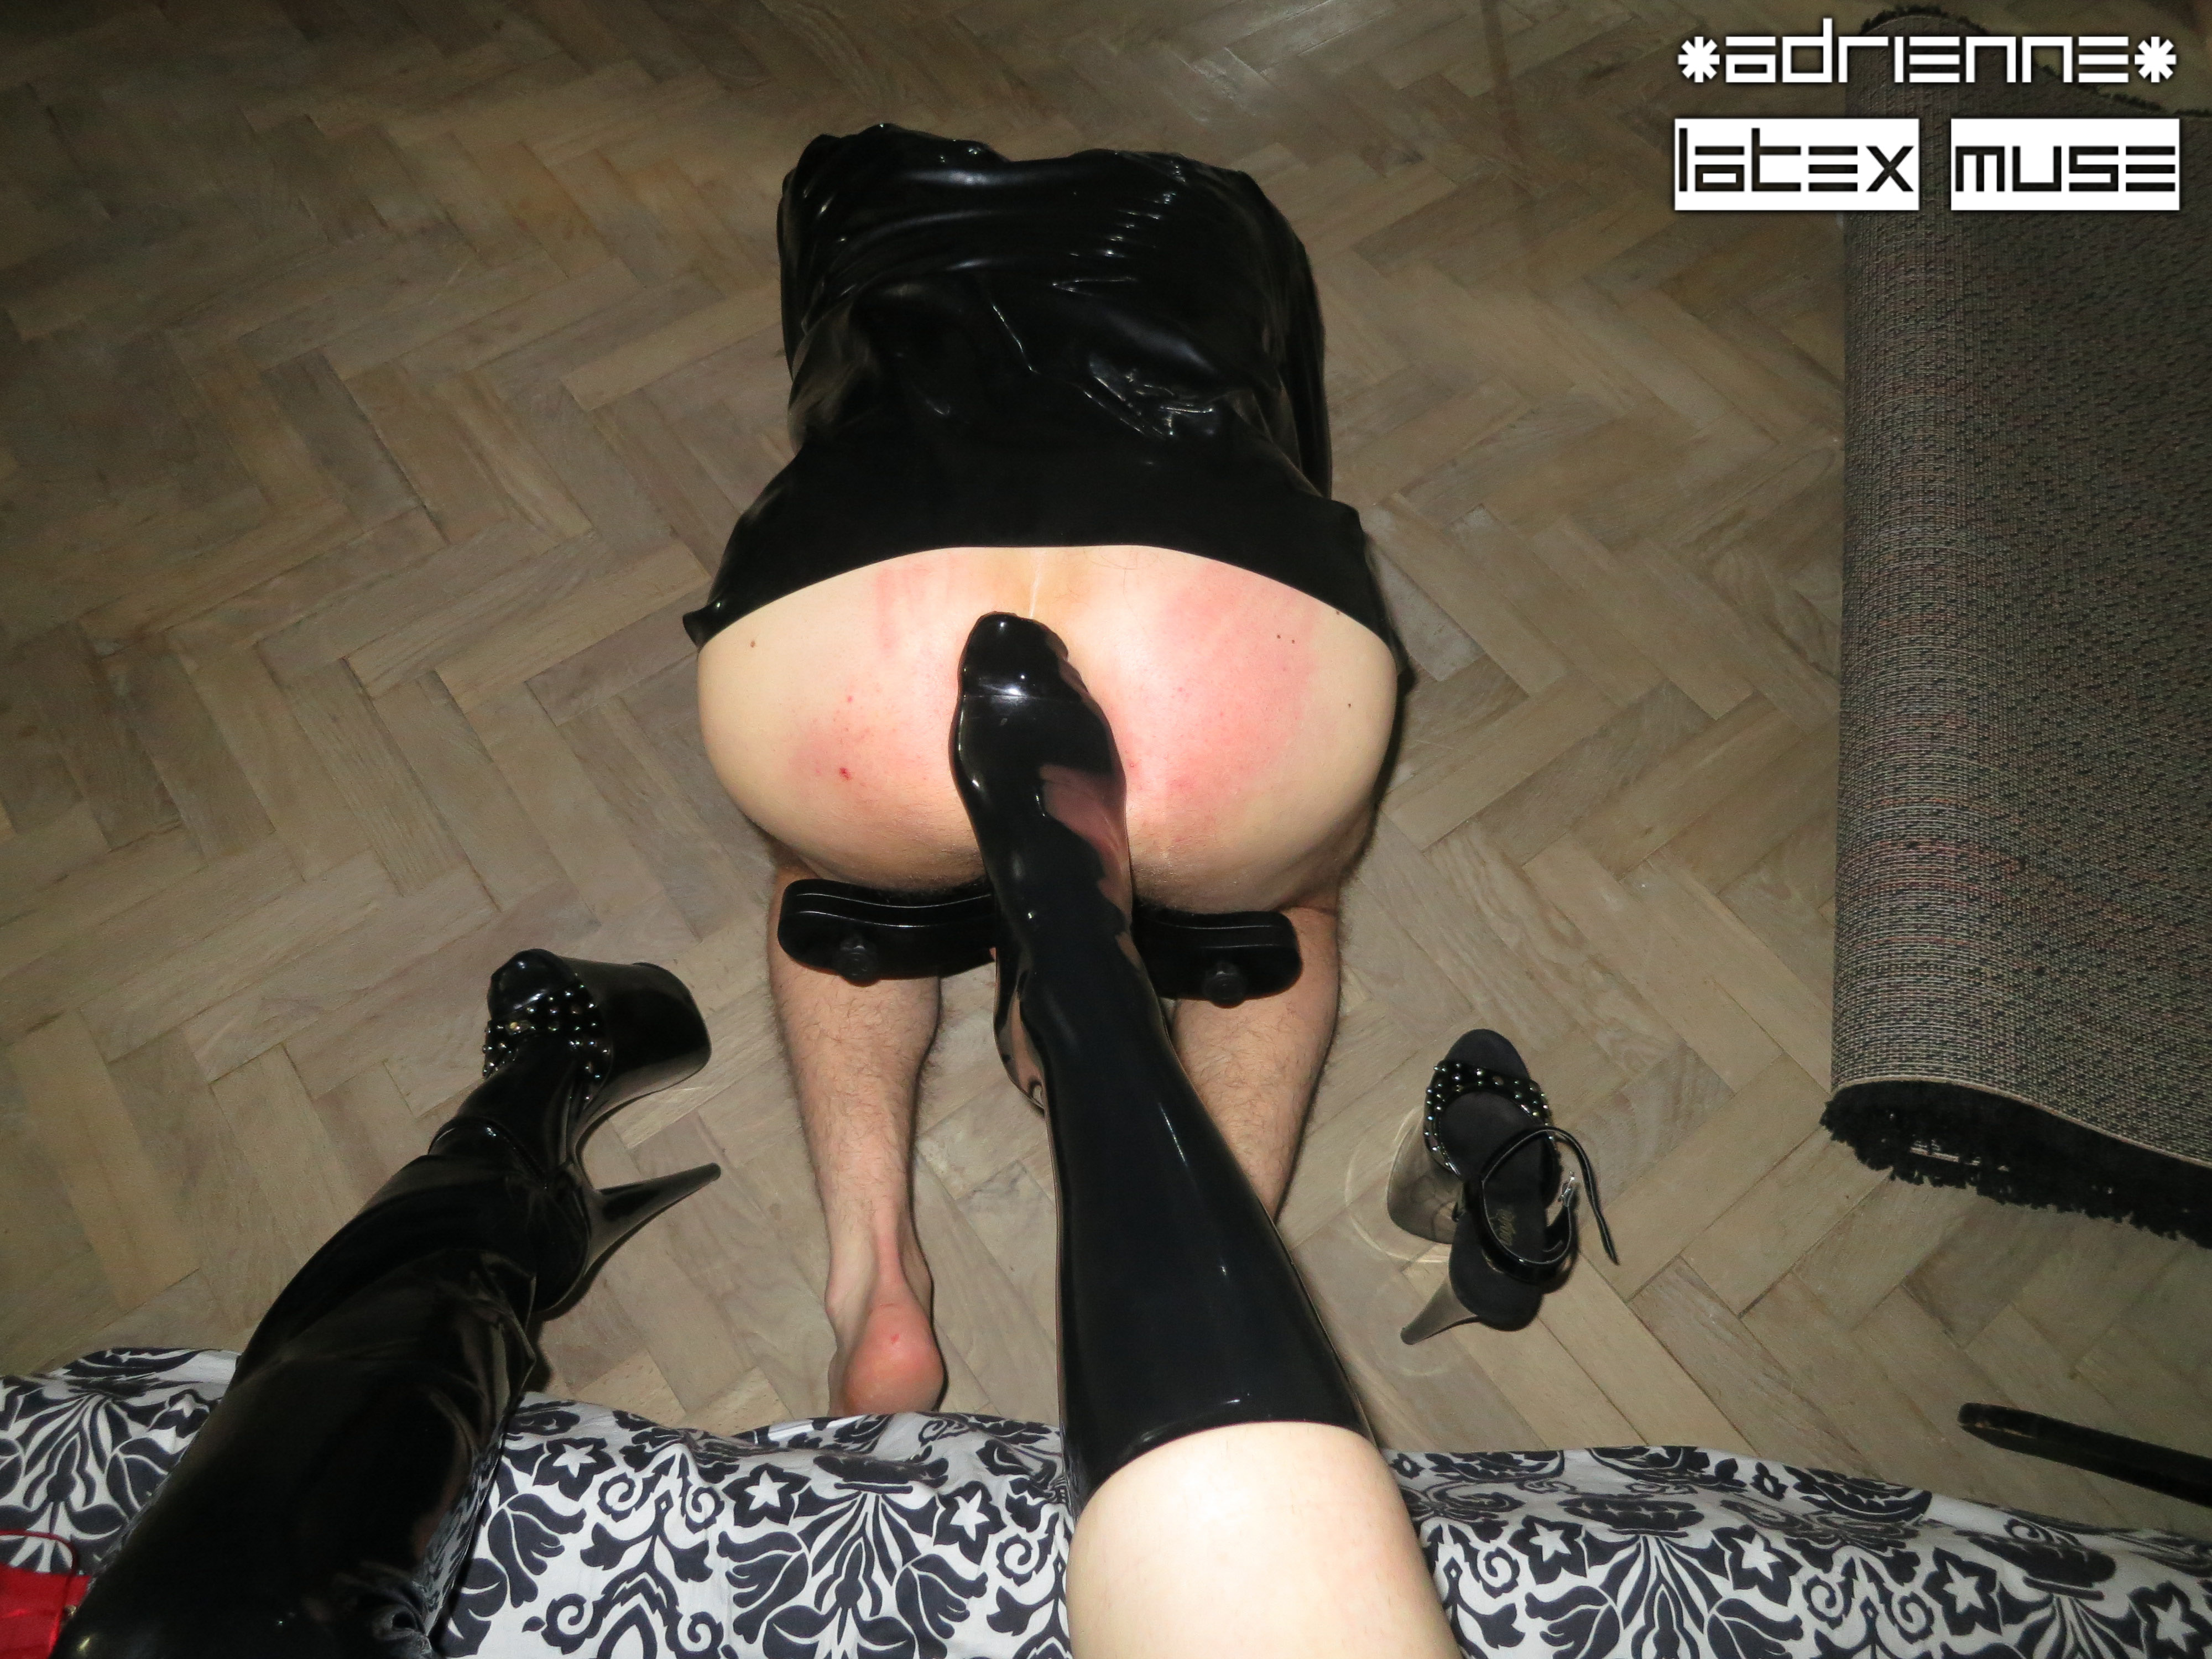 2015 - Private femdom session